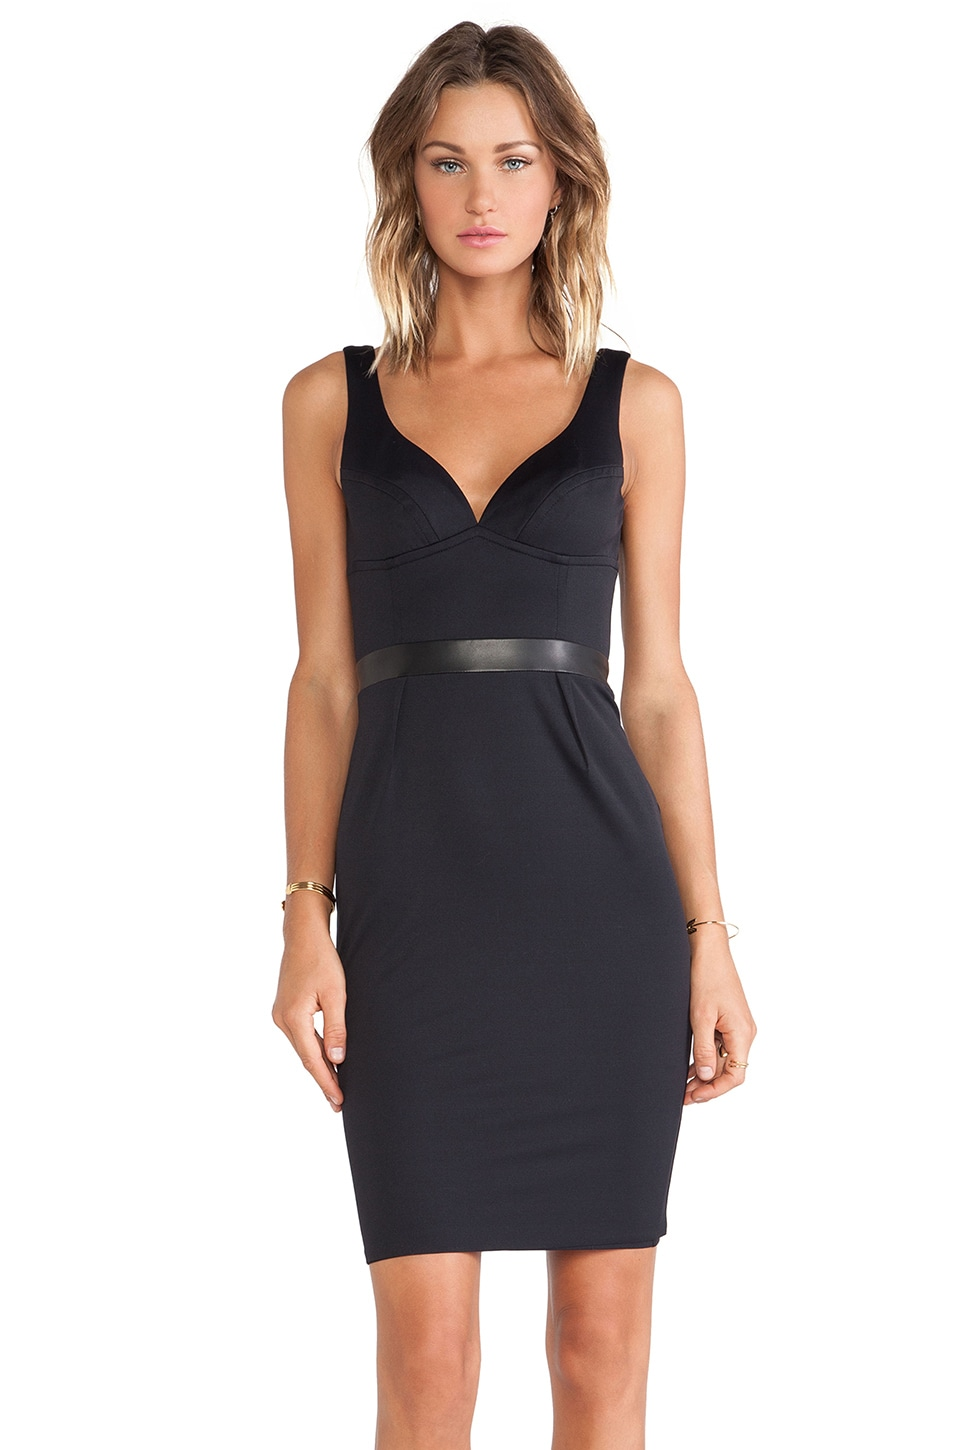 LaPina by David Helwani LaPina Stephanie Dress in Black